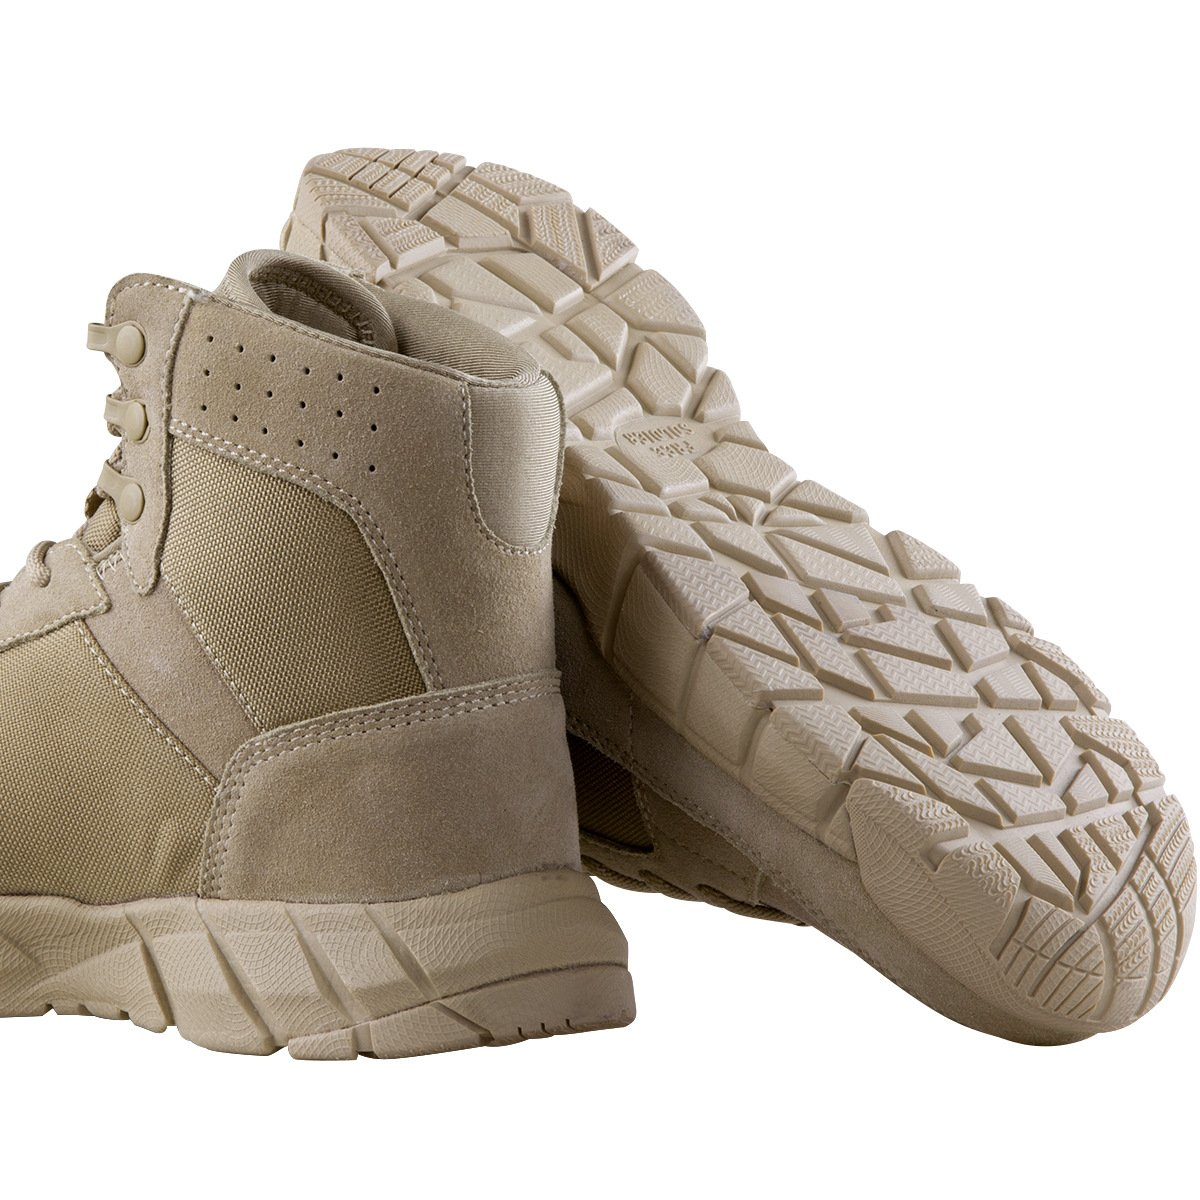 FREE SOLDIER Men's Tactical Boots 6'' inch Lightweight Military Boots for Hiking Work Boots Breathable Desert Boots (Tan, 7) by FREE SOLDIER (Image #2)